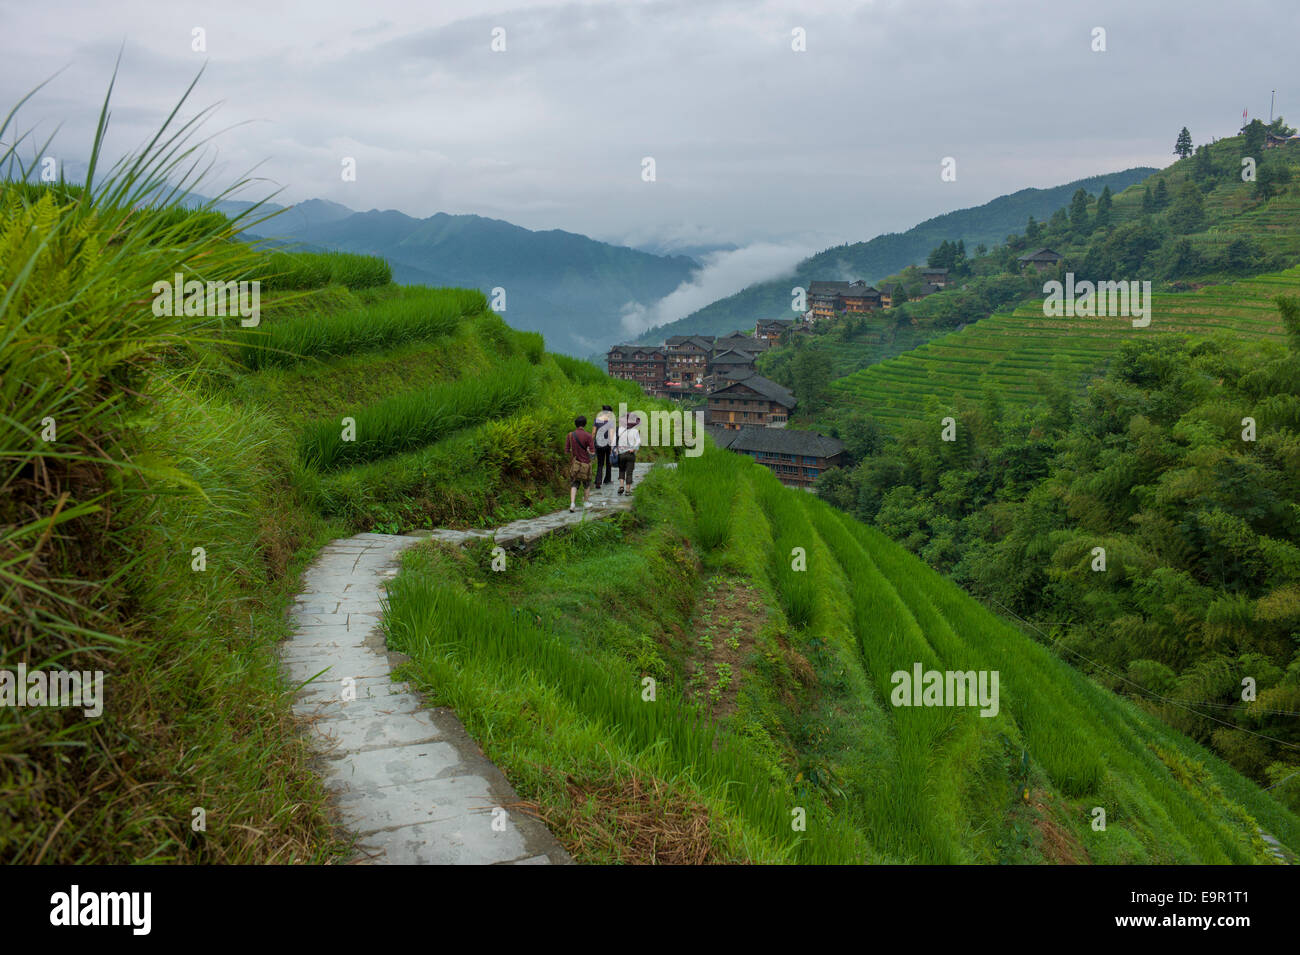 Longsheng Rice Terrace, Dragon's Backbone, Longji, China. Stock Photo